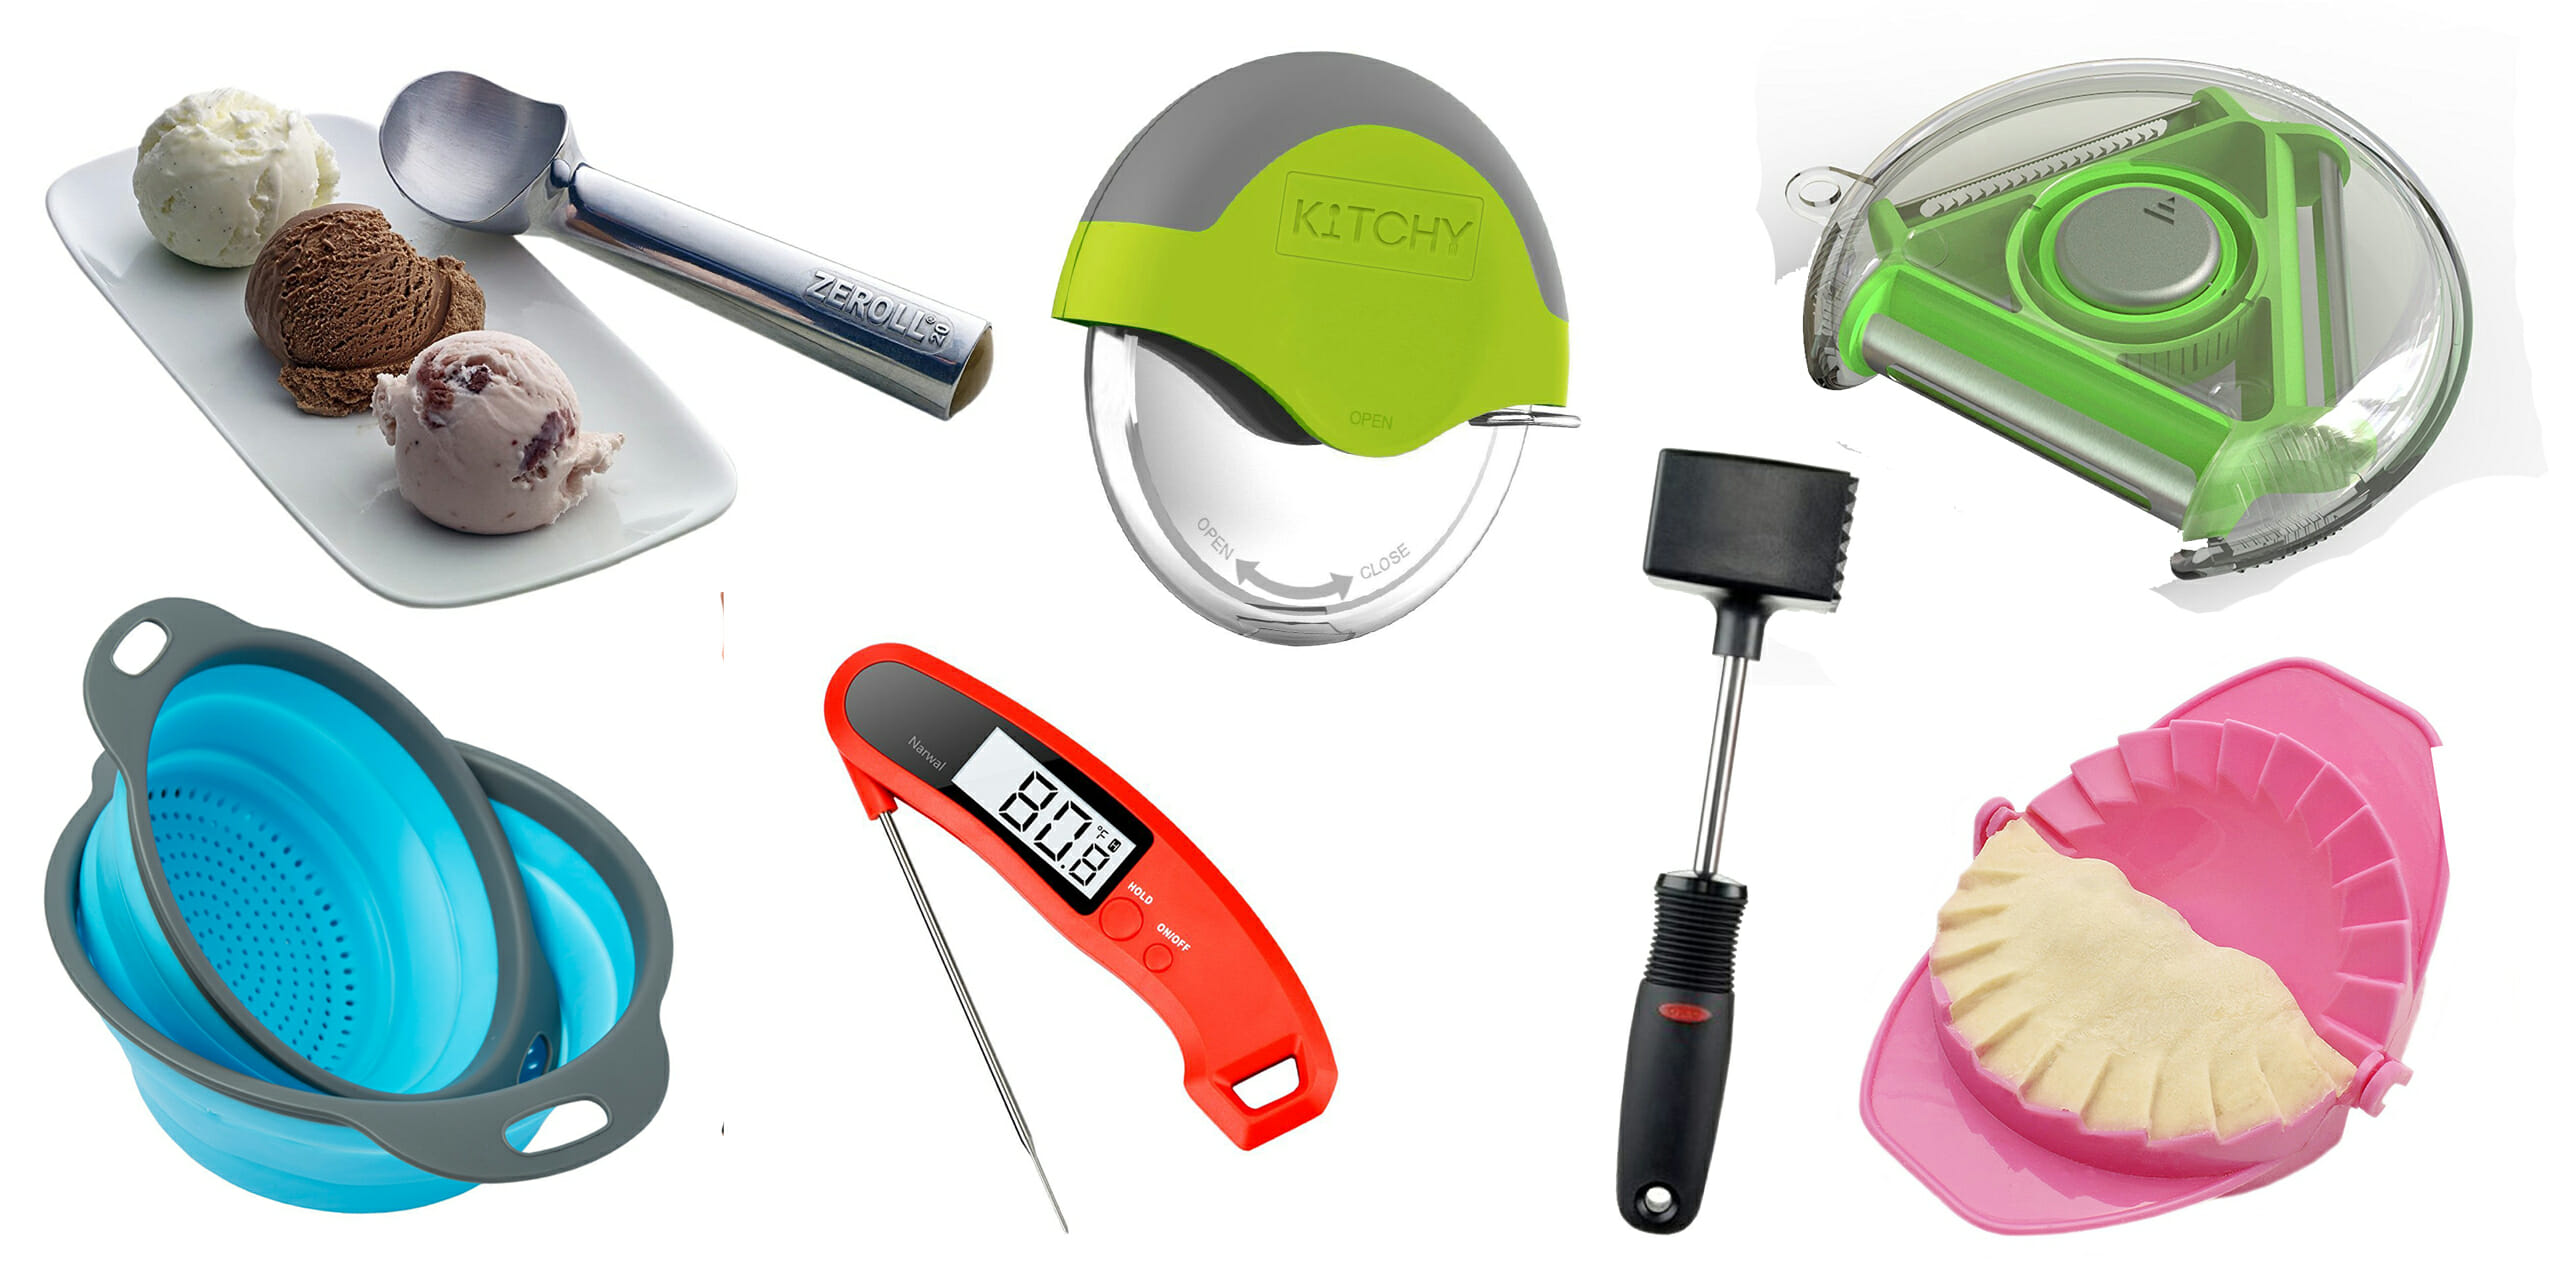 The 10 best kitchen gadgets to add to your collection